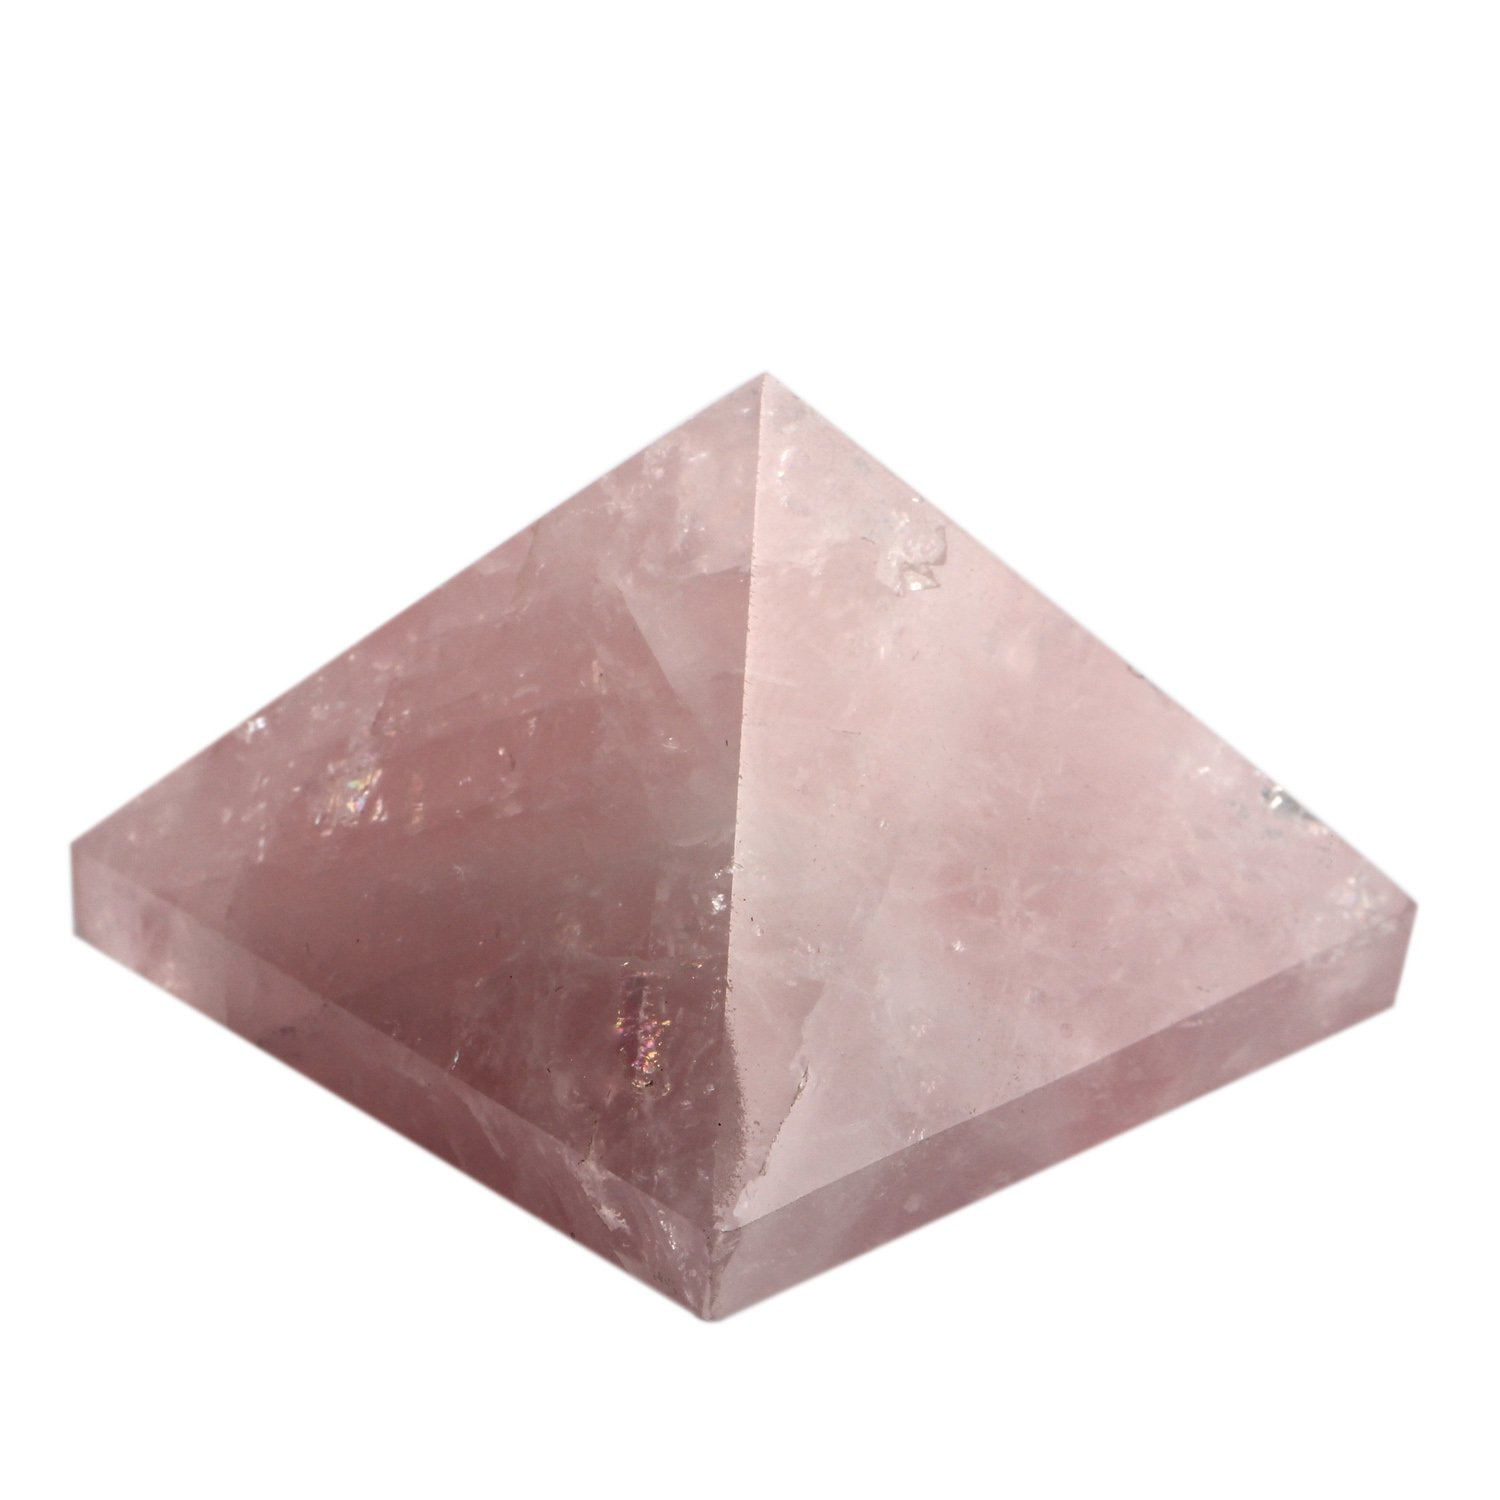 1.5inch Natural Rose quartz Pyramid Carved Chakra Healing Crystal Reiki Stone Top Quality Gemstone Radiation Deflection Home Decor Gift Decoration Crafts (Rose quartz)